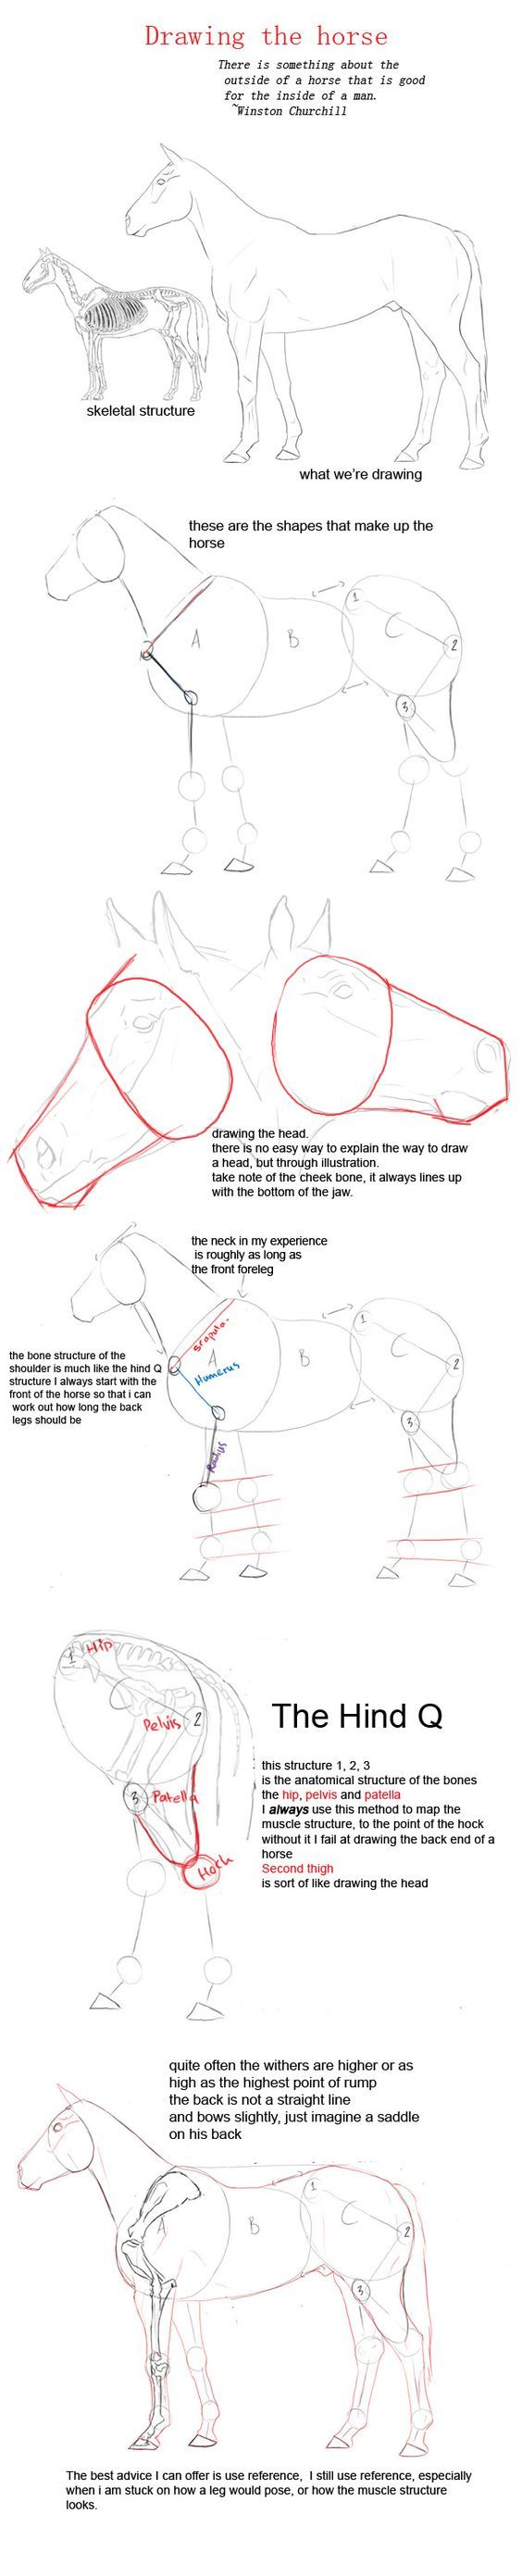 Drawing A Horse By Yobiantart On @deviantart: